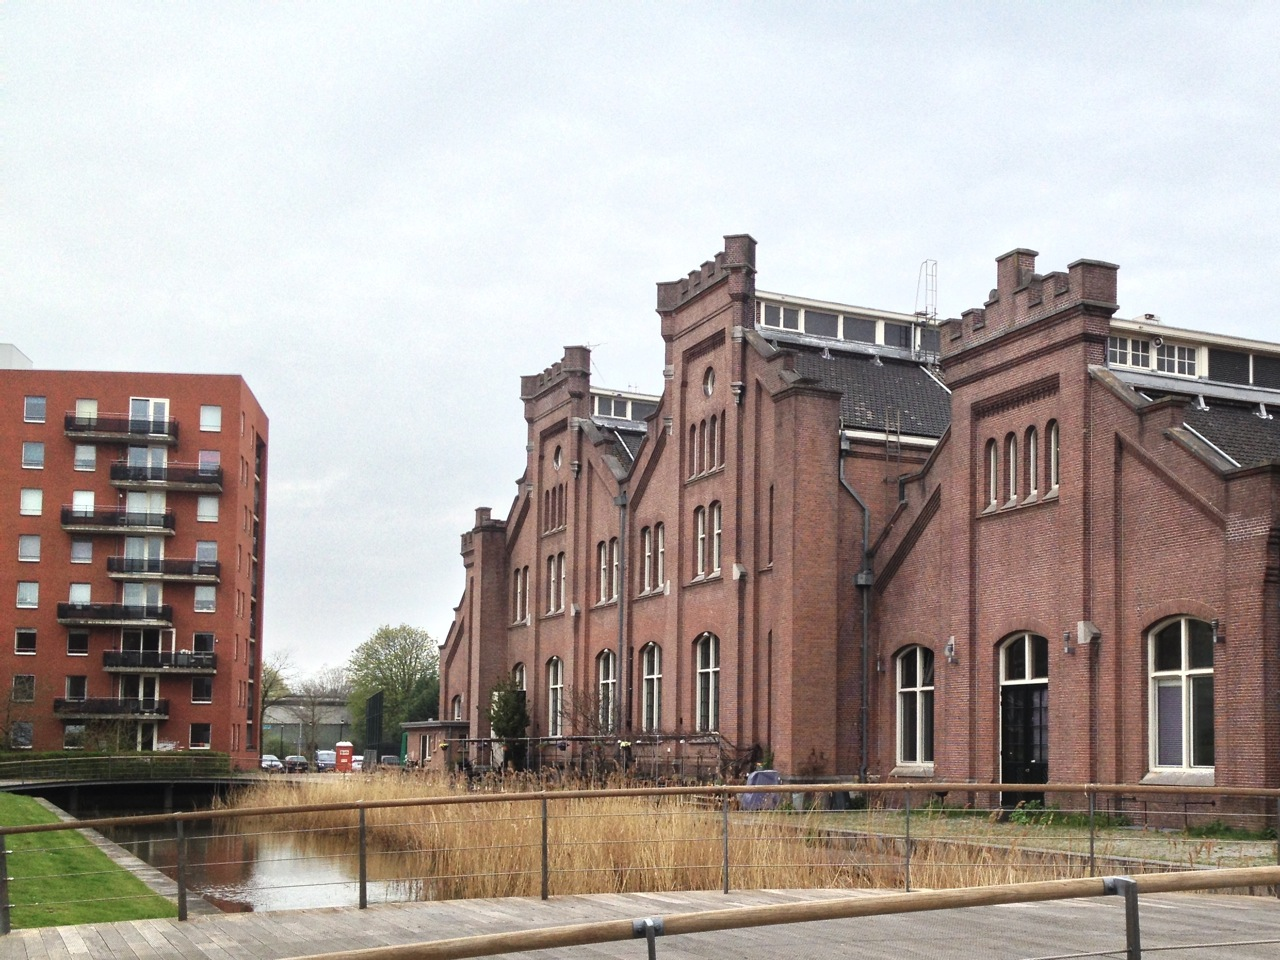 Café-Restaurant Amsterdam is located in the engine room of the old Pumping Station Haarlemmerweg